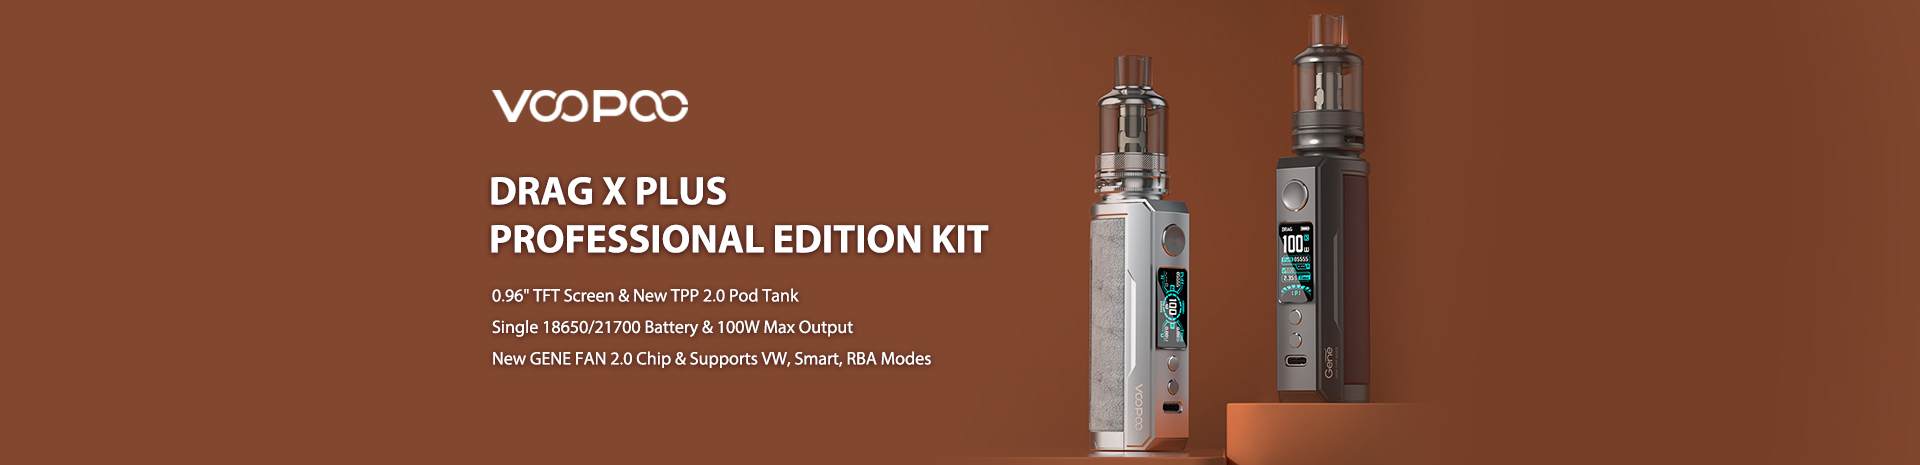 Sourcemore VOOPOO Drag X Plus Professional Edition Giveaway Banner